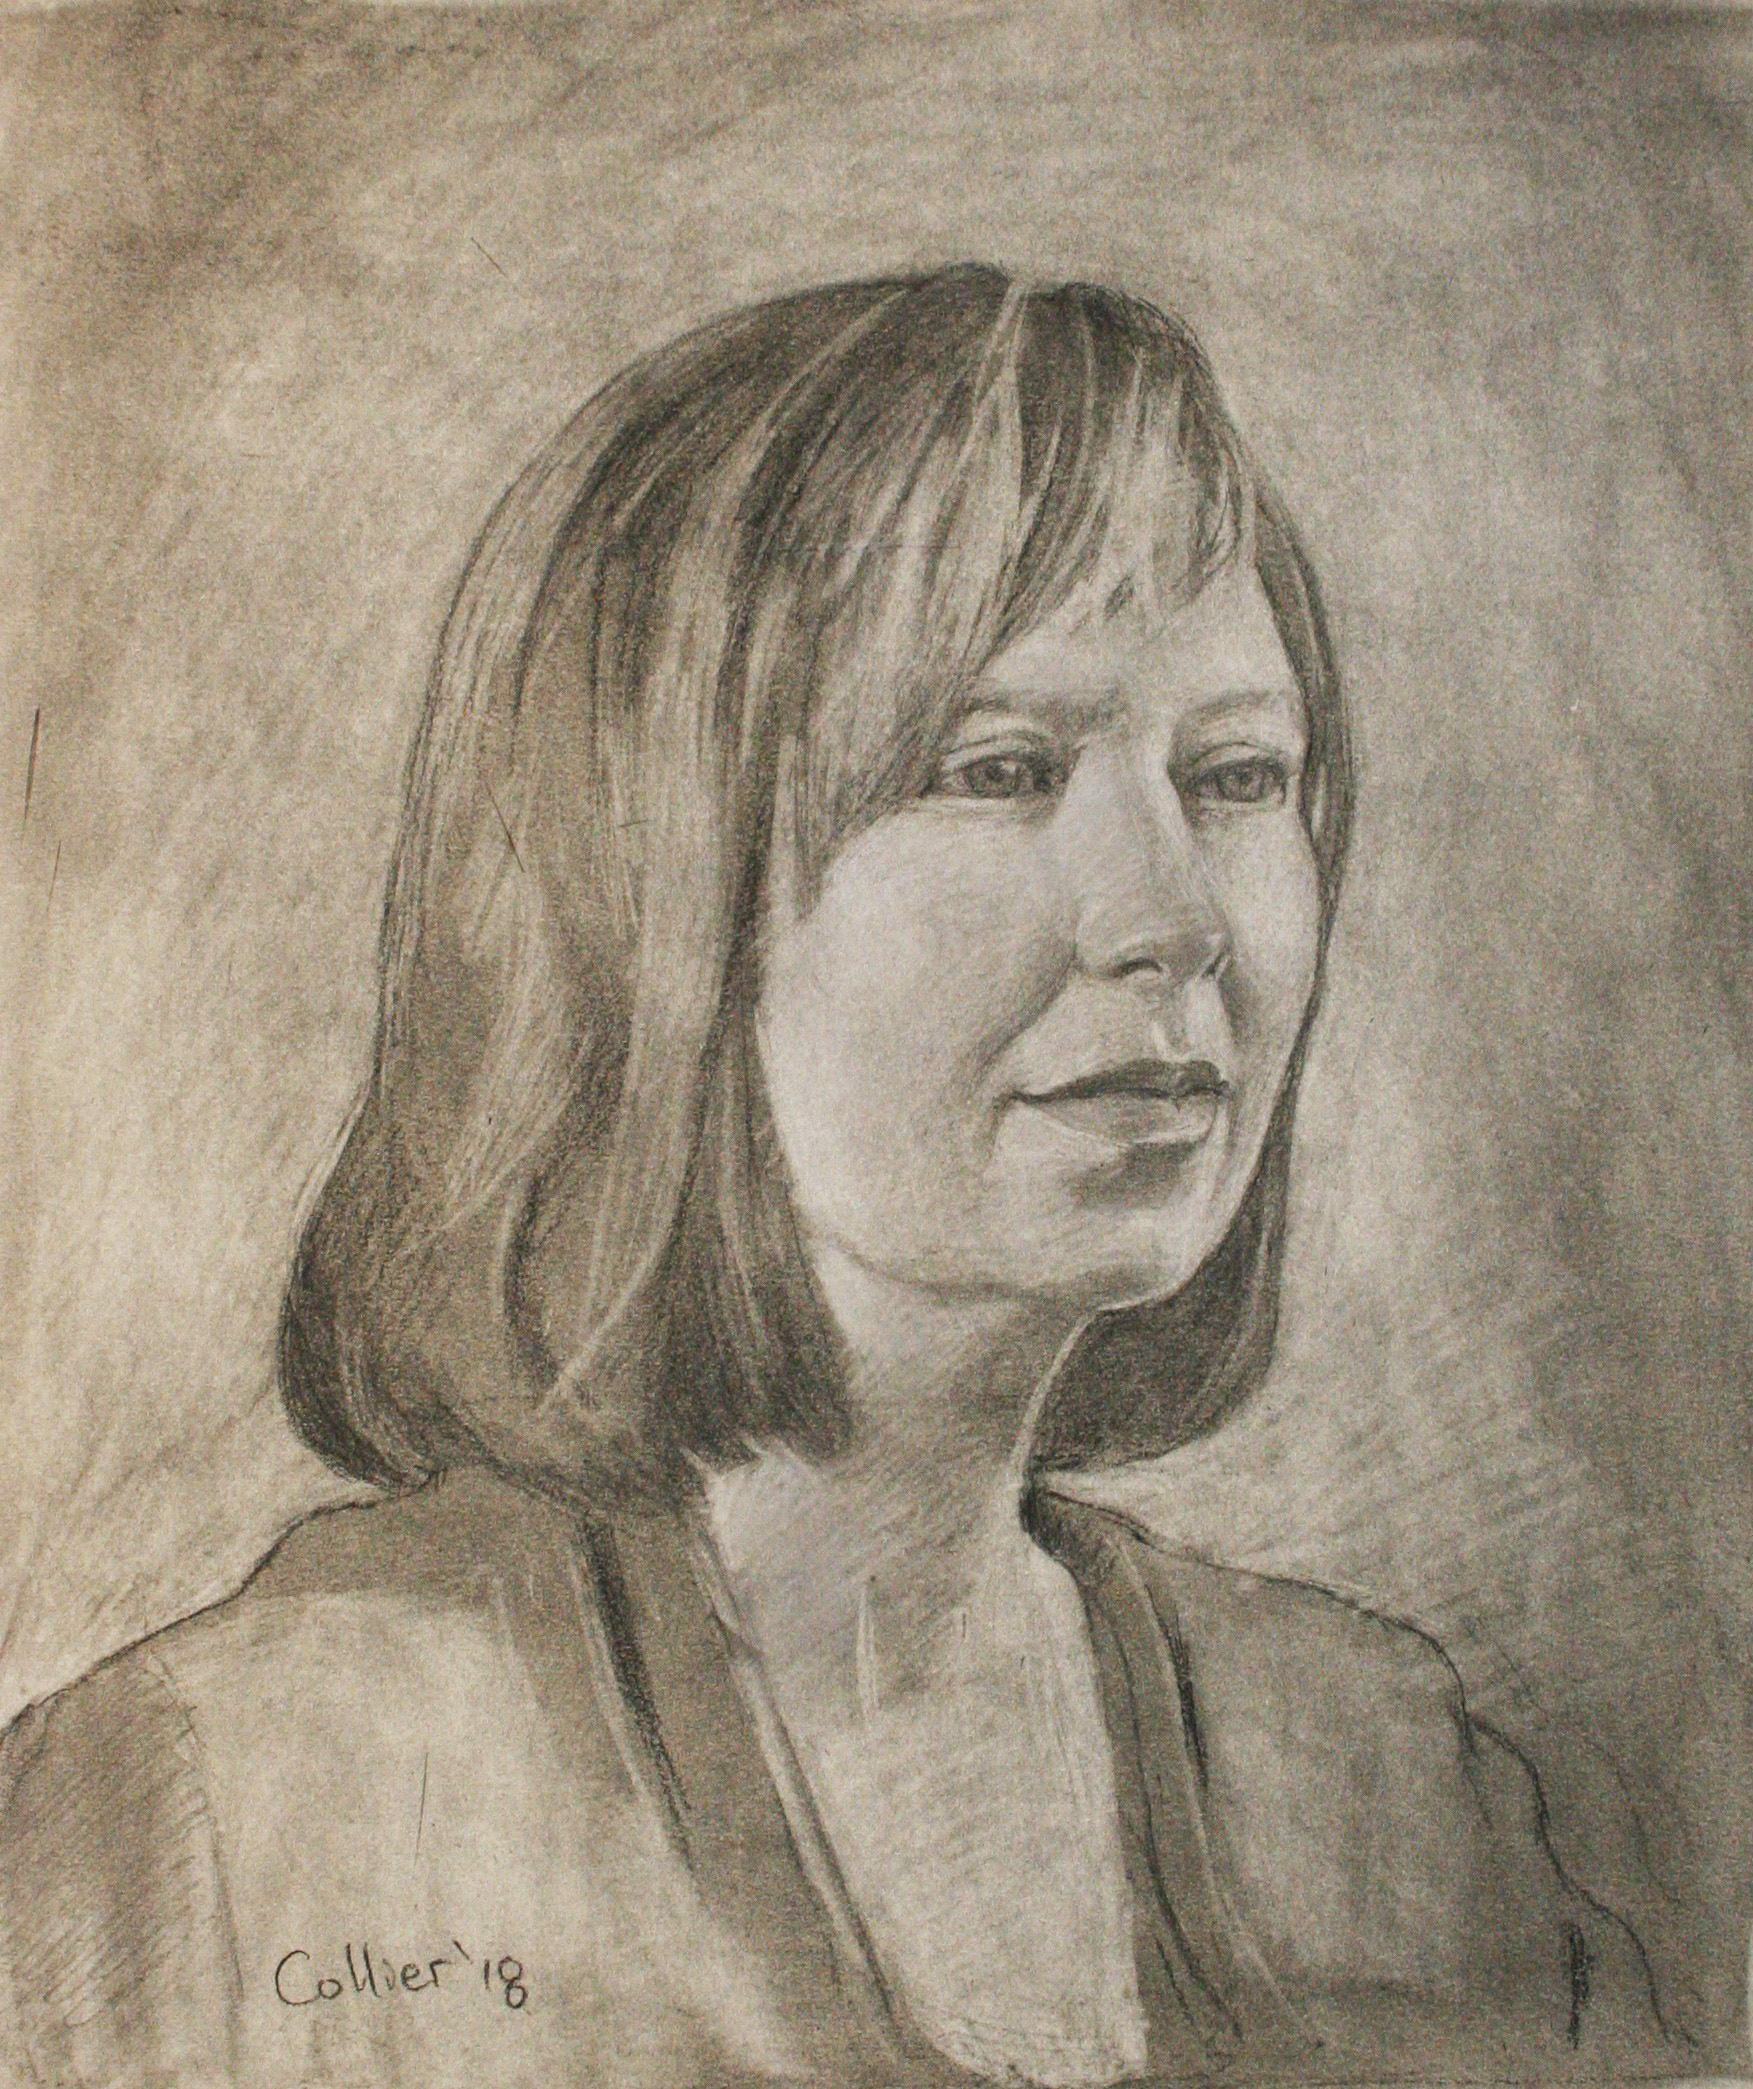 Howard Collier did this charcoal drawing.